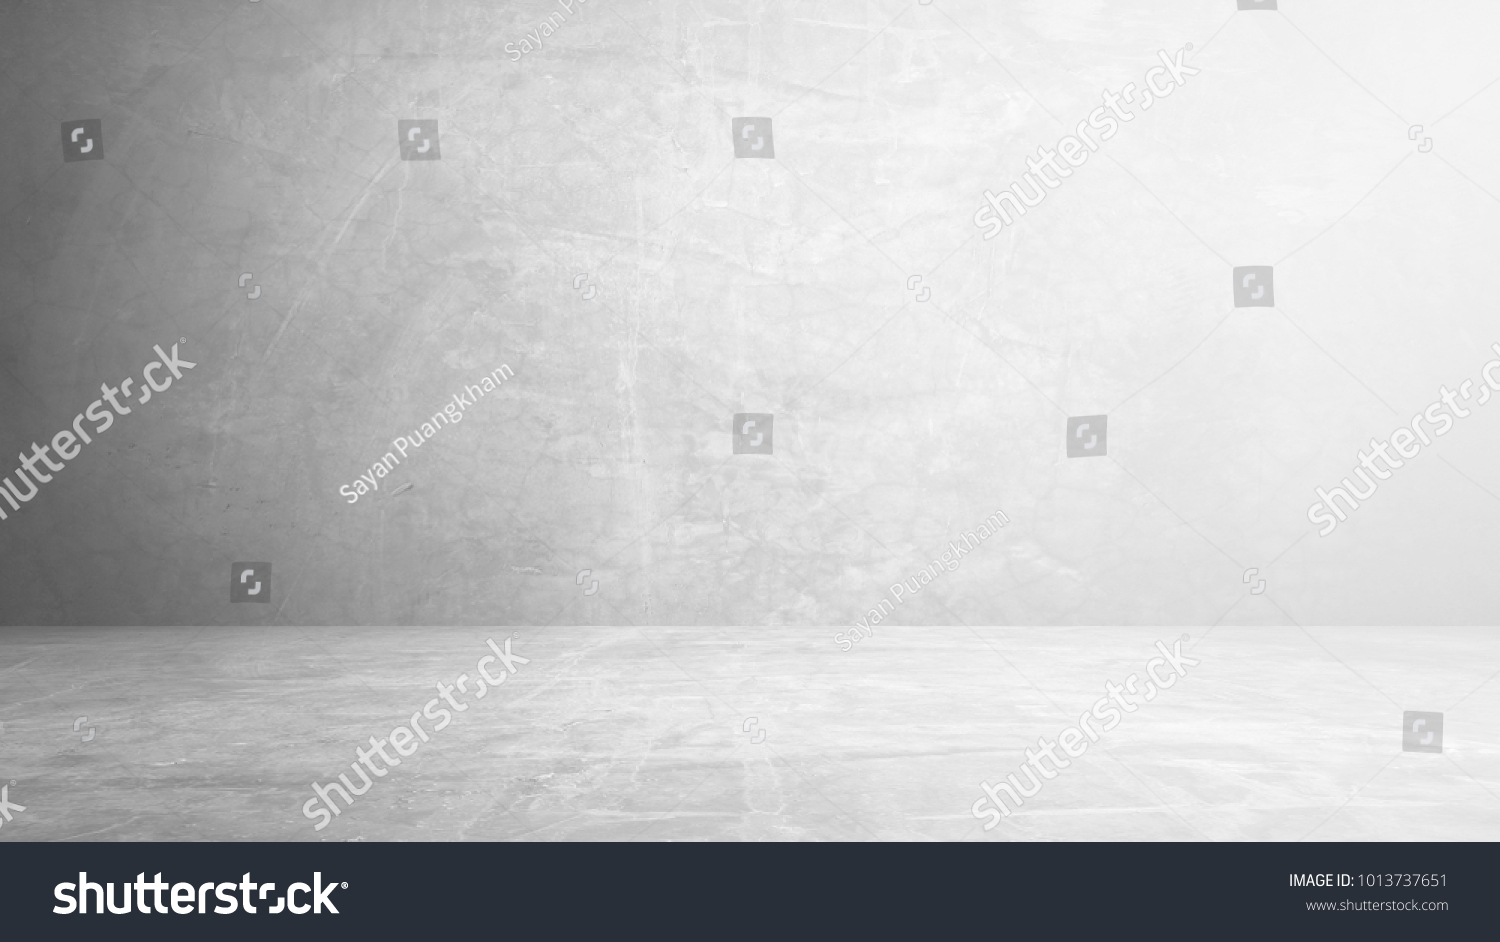 cement floor and wall backgrounds, room, interior, display products.